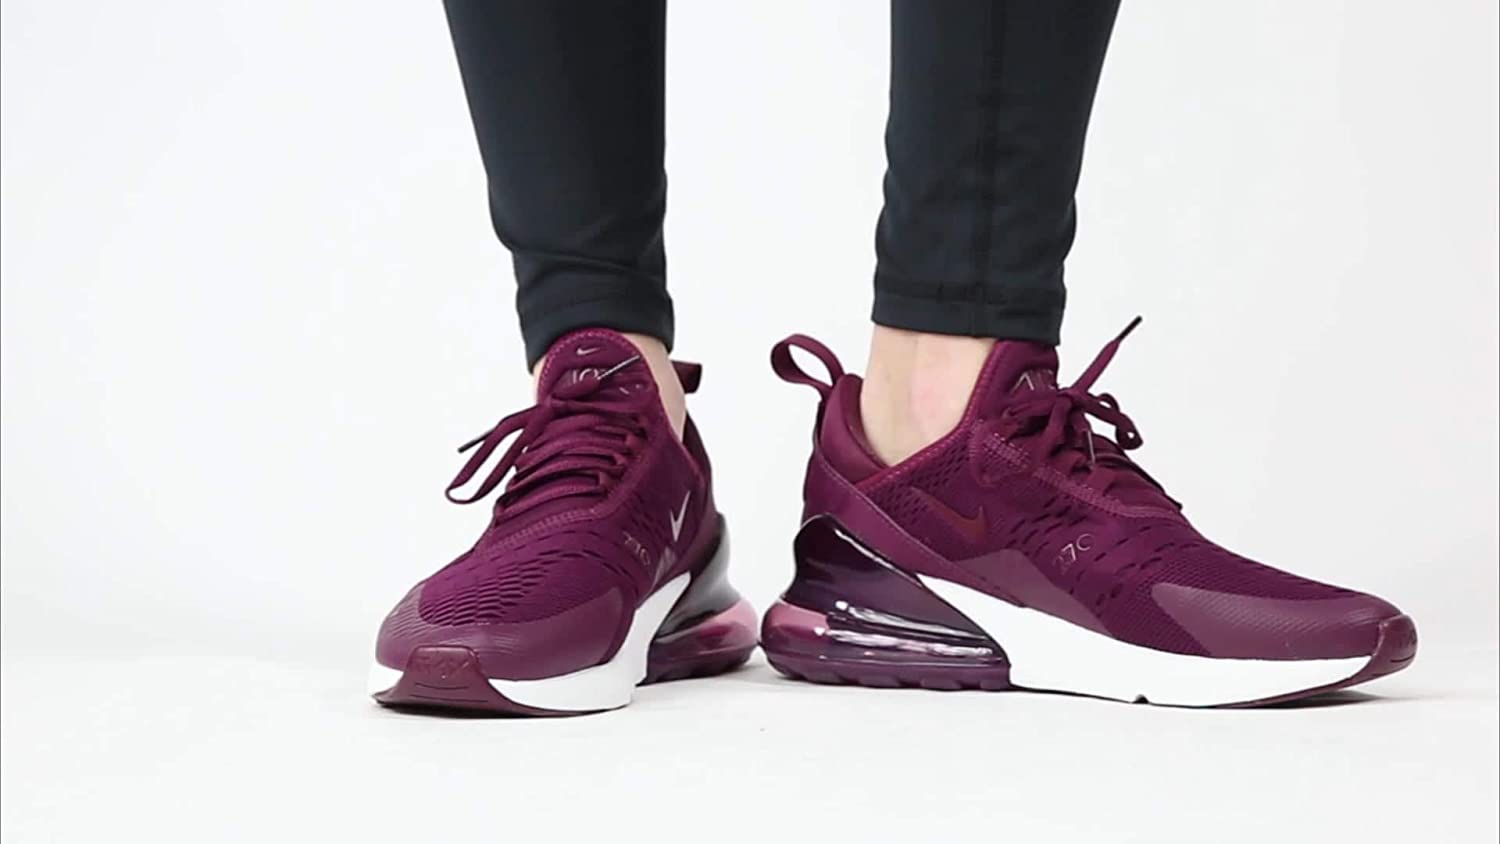 ecuación angustia Dictar  Amazon.com: Nike Air Max 270 - Zapatos para mujer (8.5, color morado y  blanco): Shoes